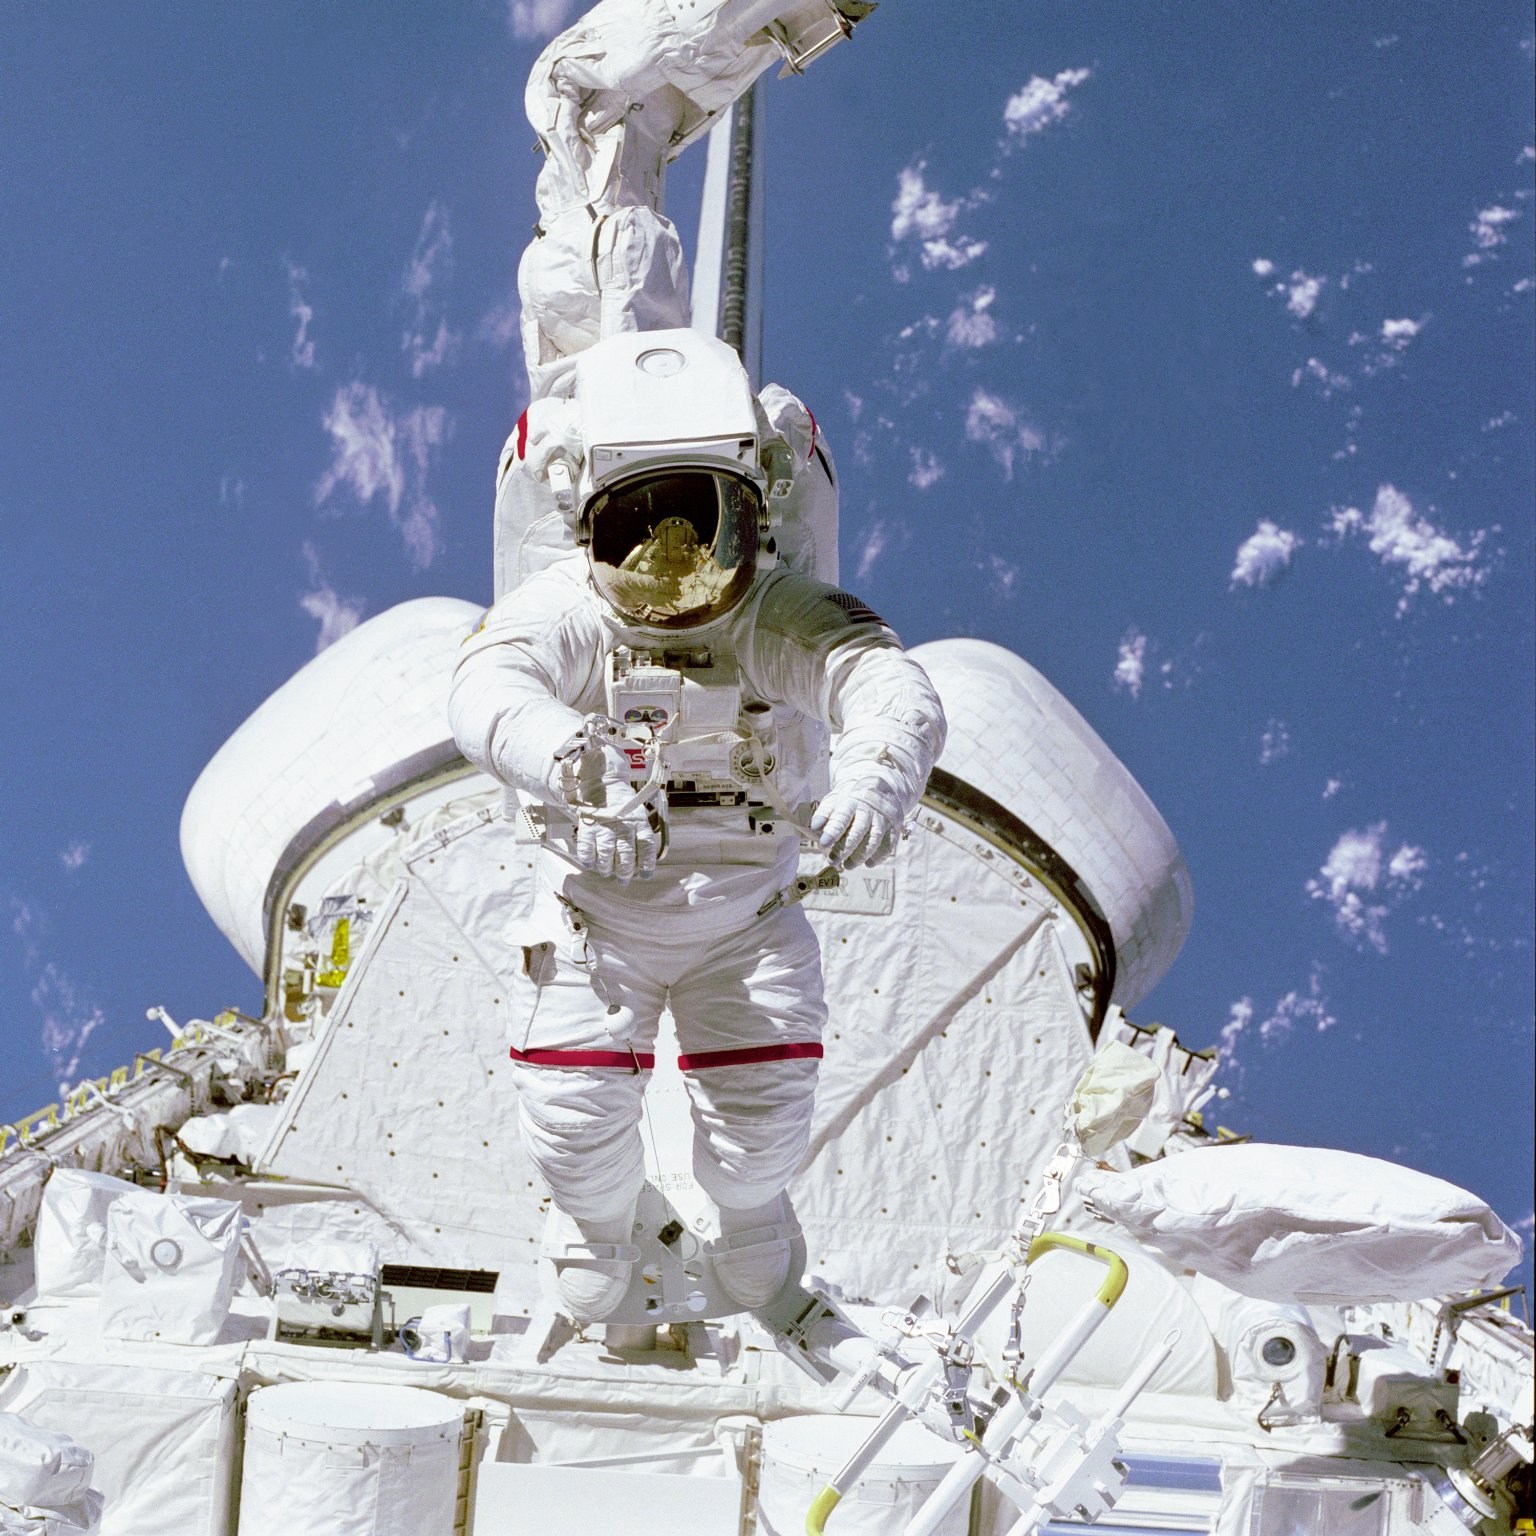 McCandless on Arm in Aft Payload Bay